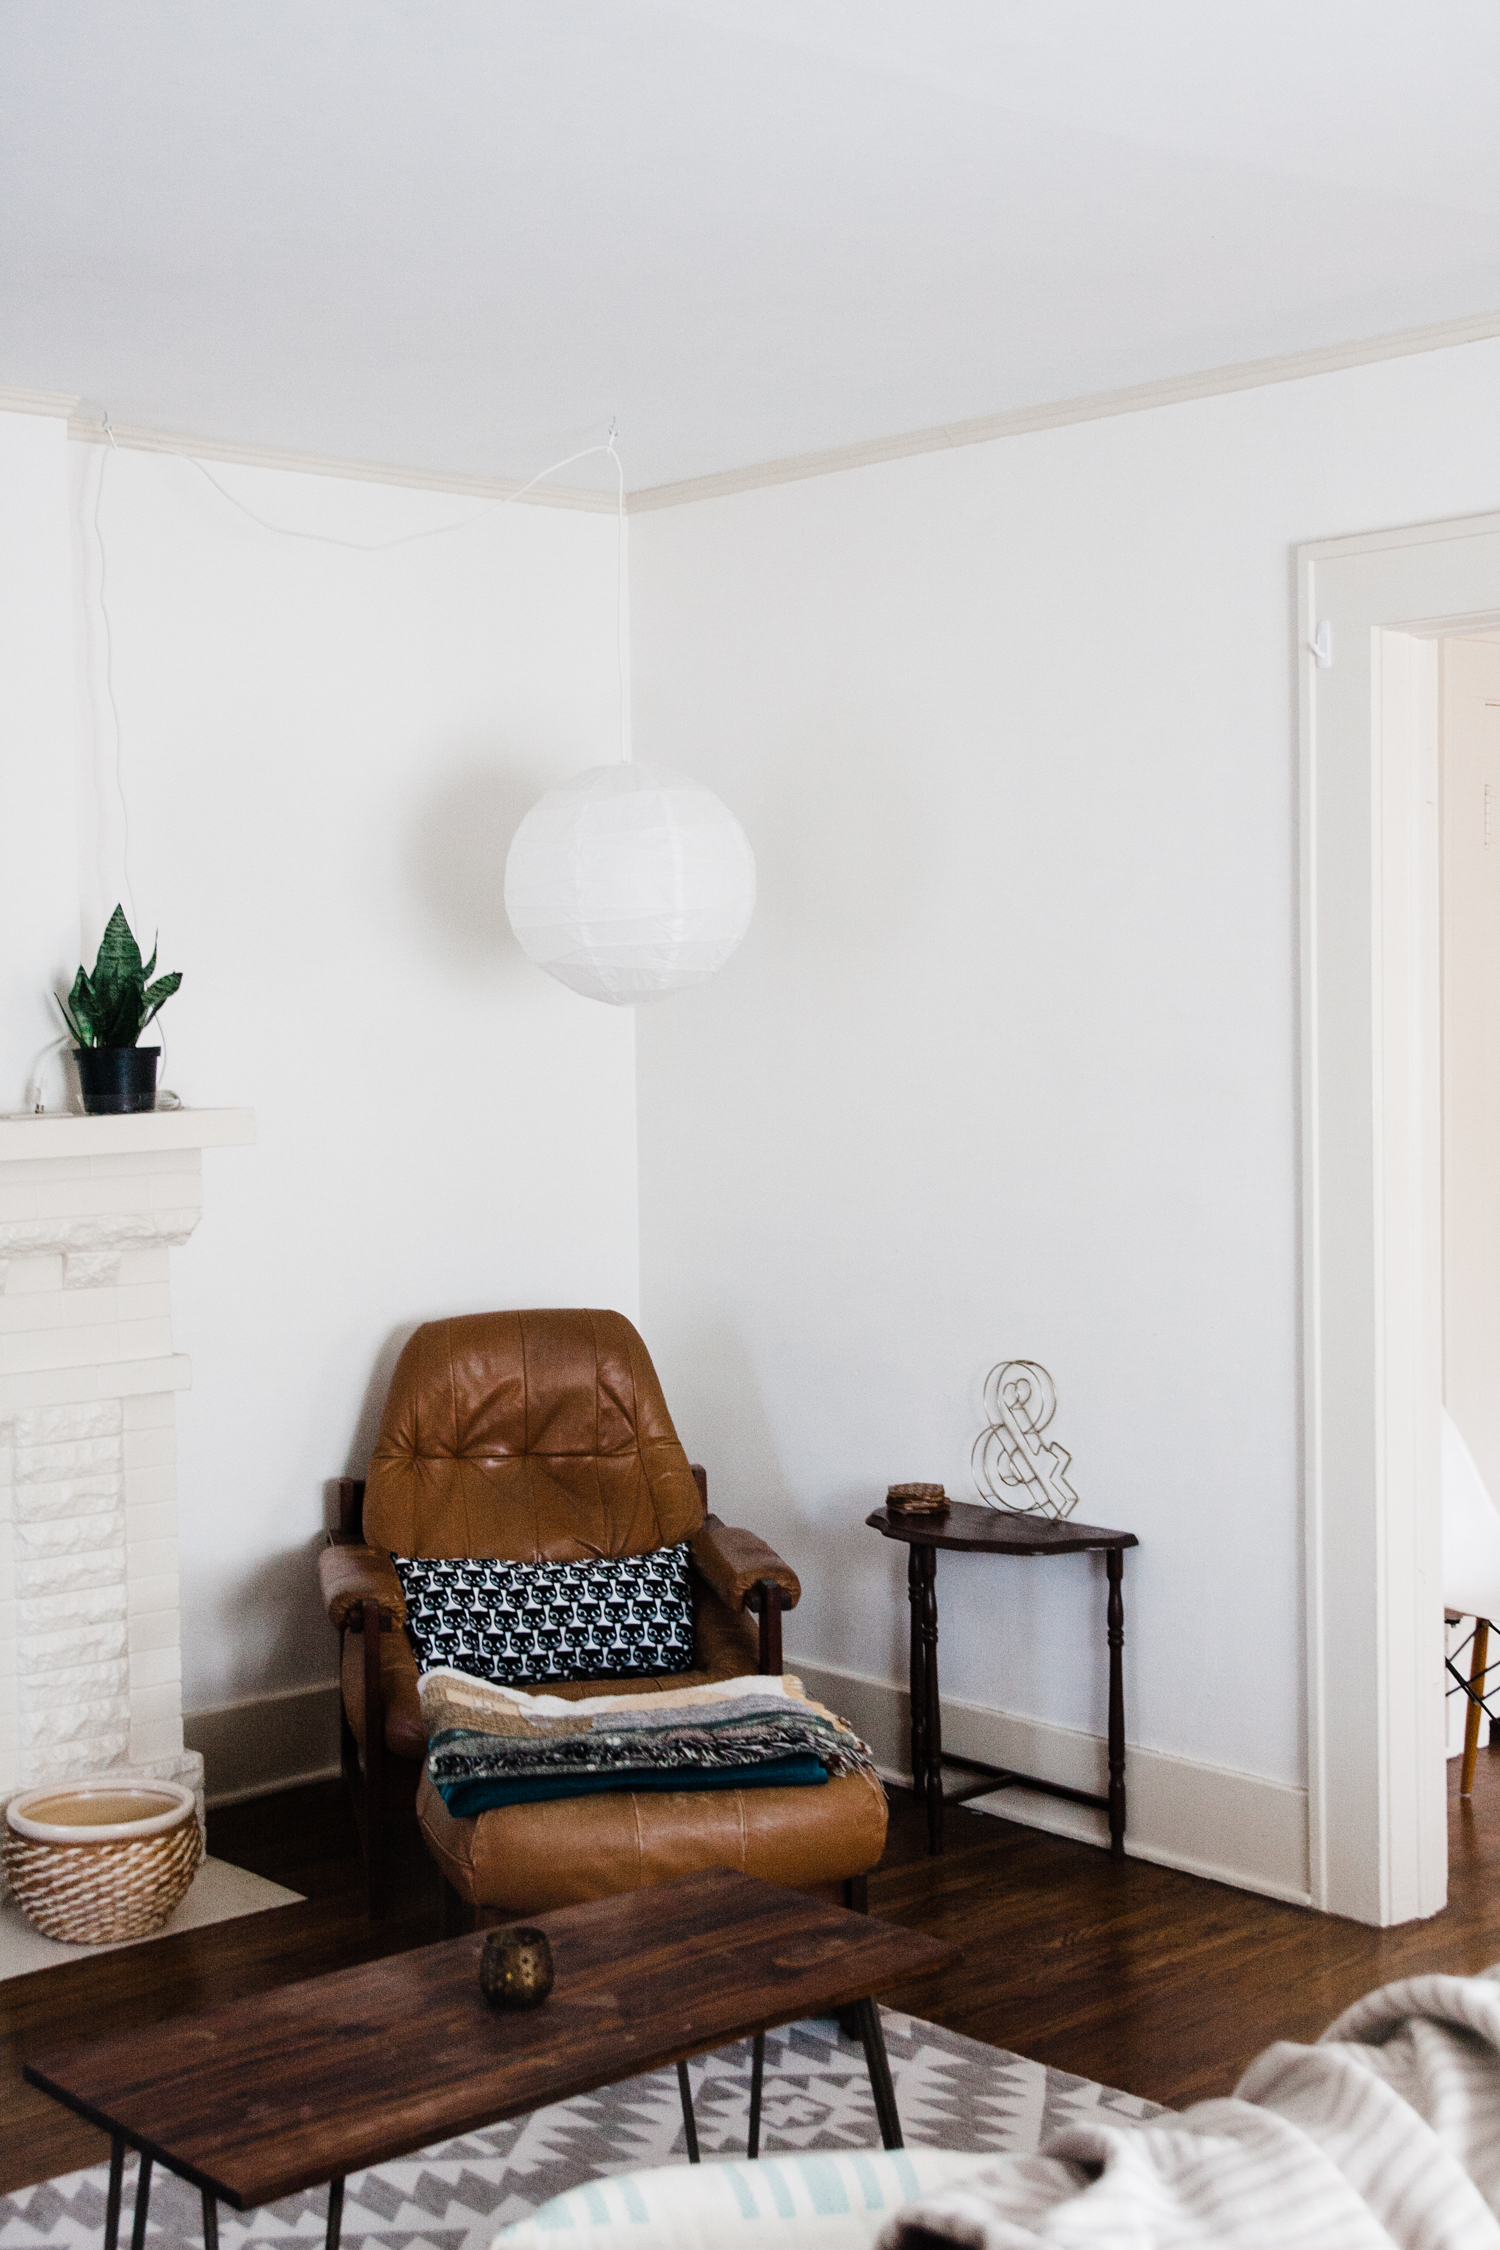 Emily snagged this Percival Lafer leather chair and ottoman from our shop. We are happy it lives in such a lovely home.